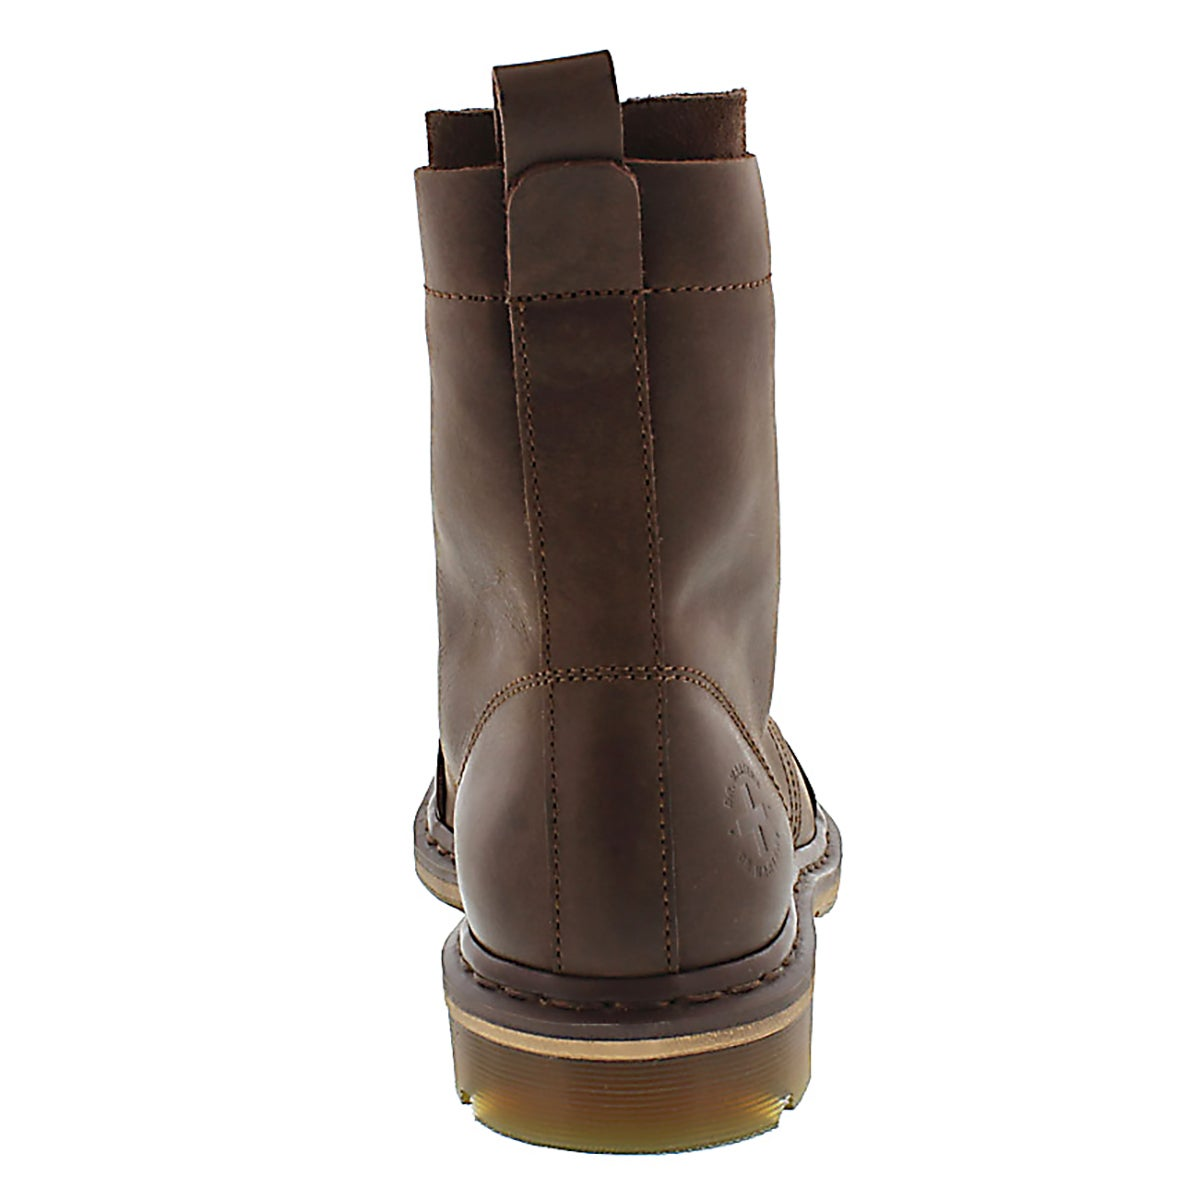 Mns Pier dk brown 9 eye leather boot